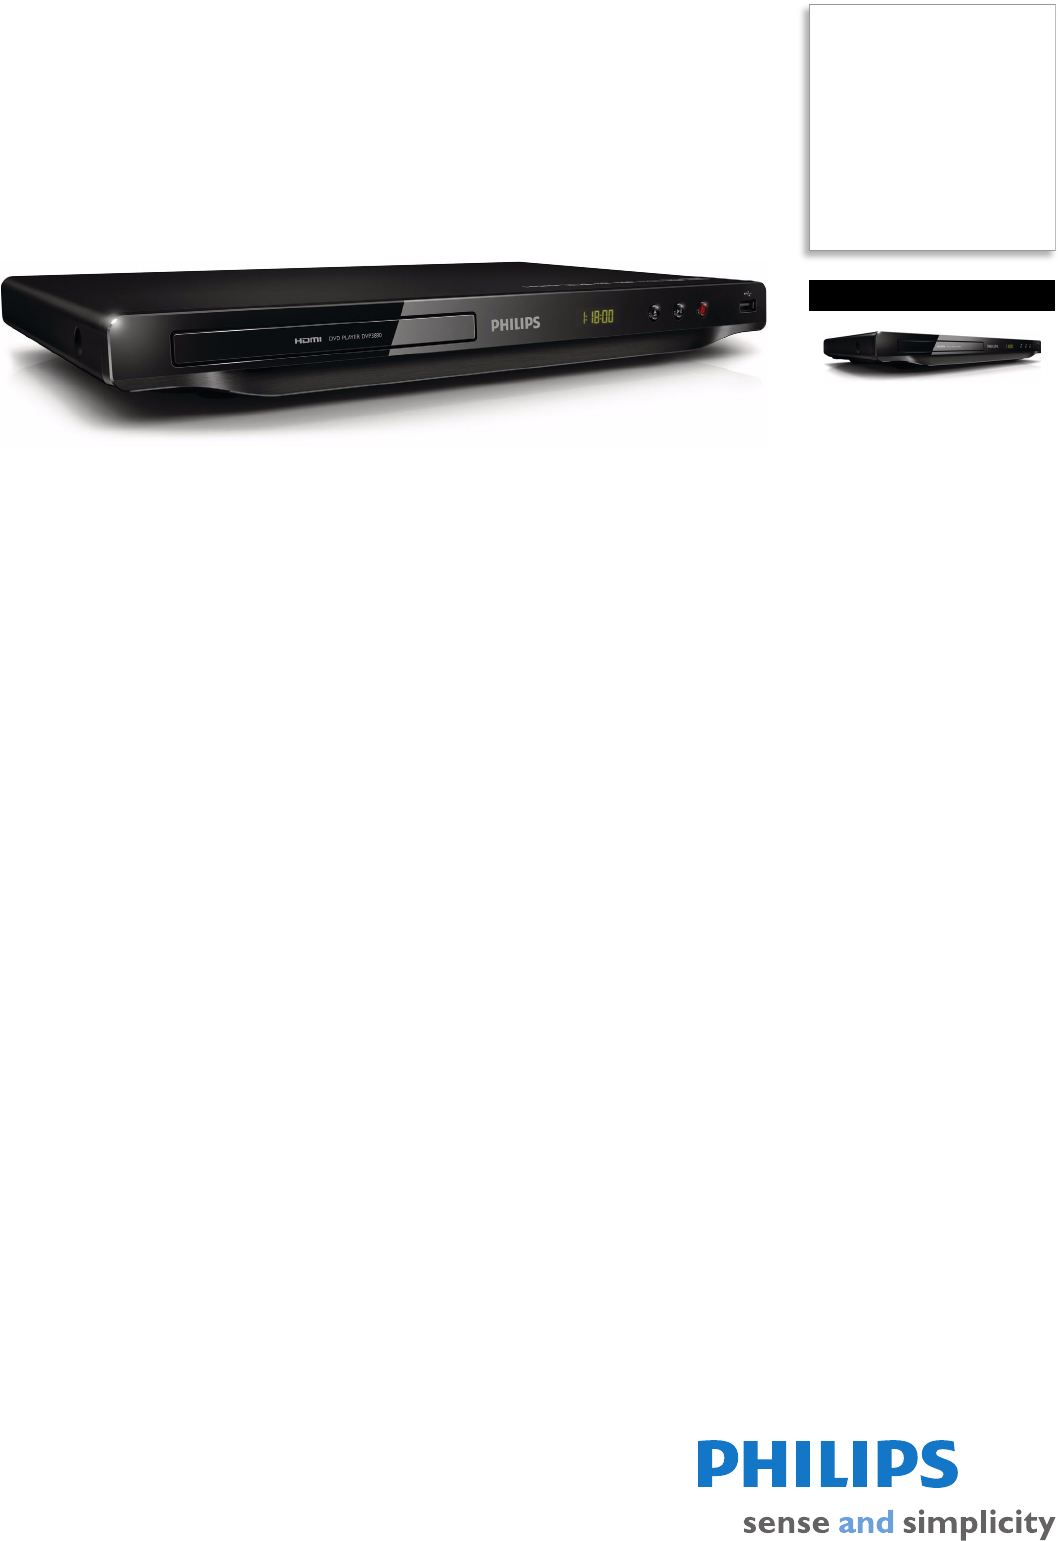 philips dvd player dvp3880 user guide manualsonline com rh tv manualsonline com Magnavox DVD Player Philips DVD Player Remote